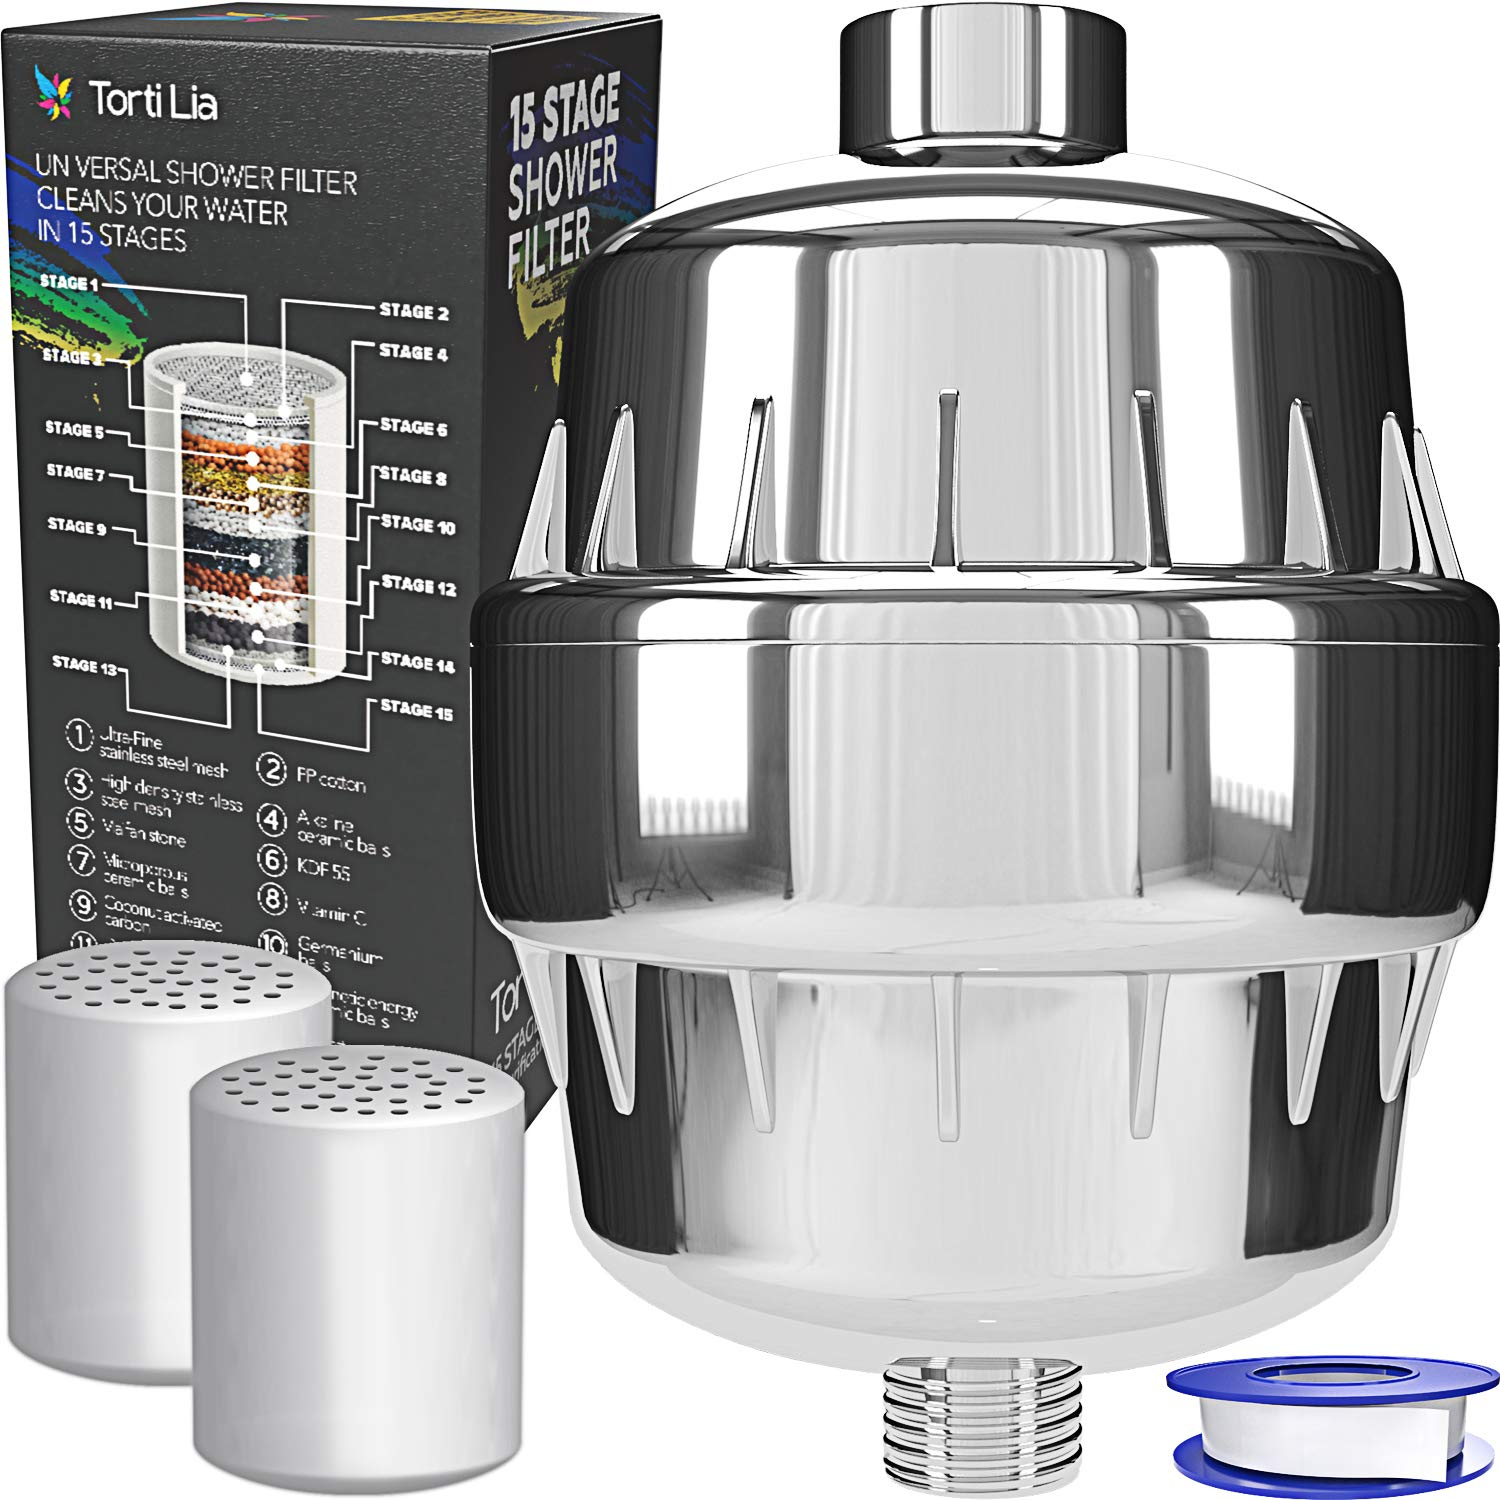 Torti Lia 15 Stage Shower Filter with Vitamin C For Hard Water - 2 Cartridges Included Shower Filters Removes Chlorine Fluoride and Harmful Substances - Showerhead Filter High Output by Torti Lia